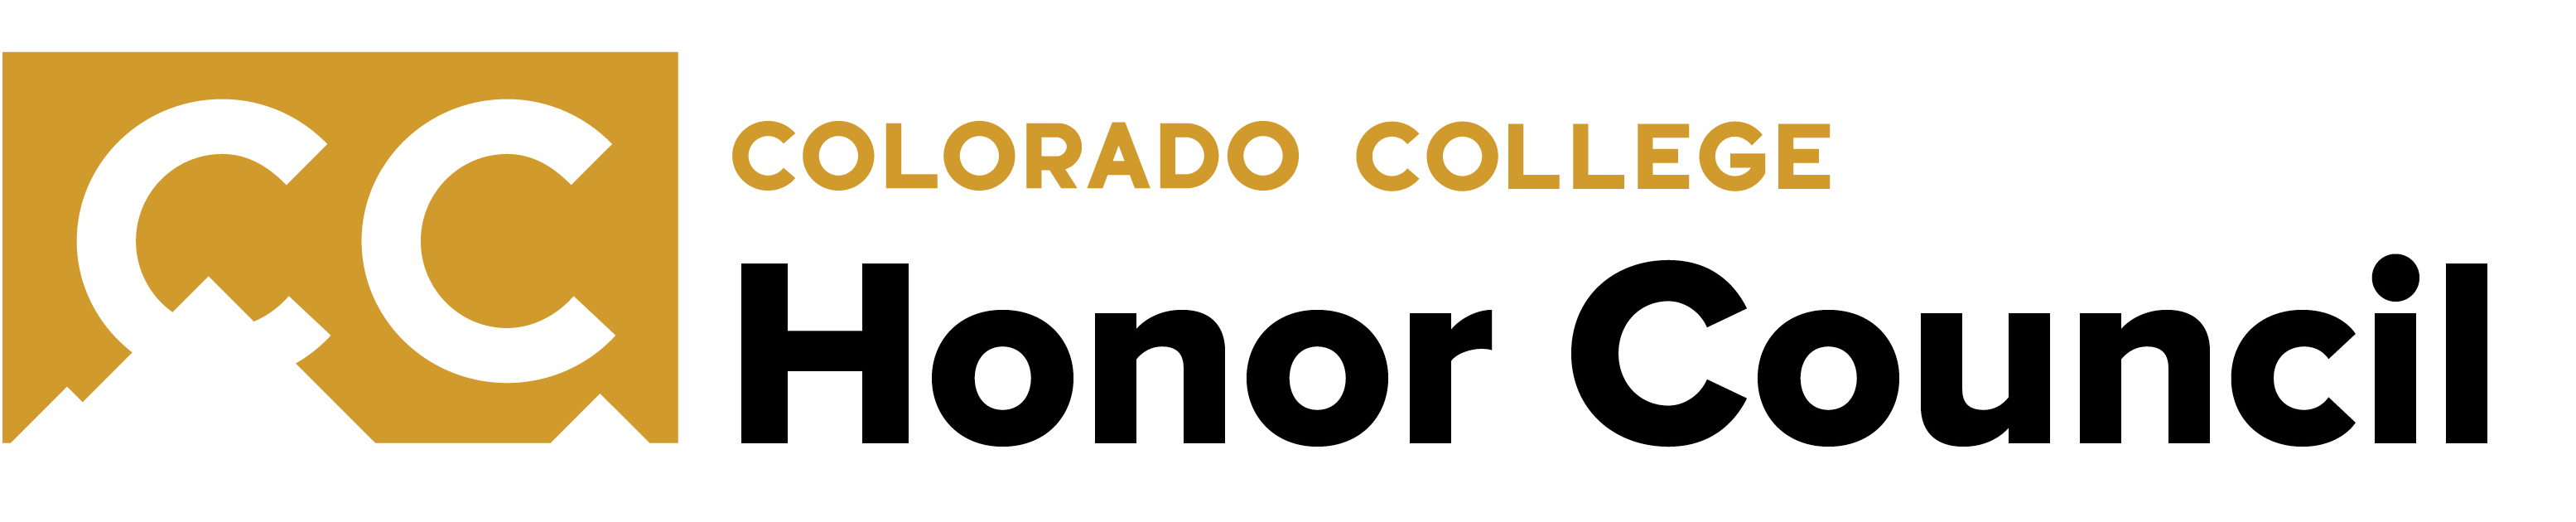 CC honor council logo